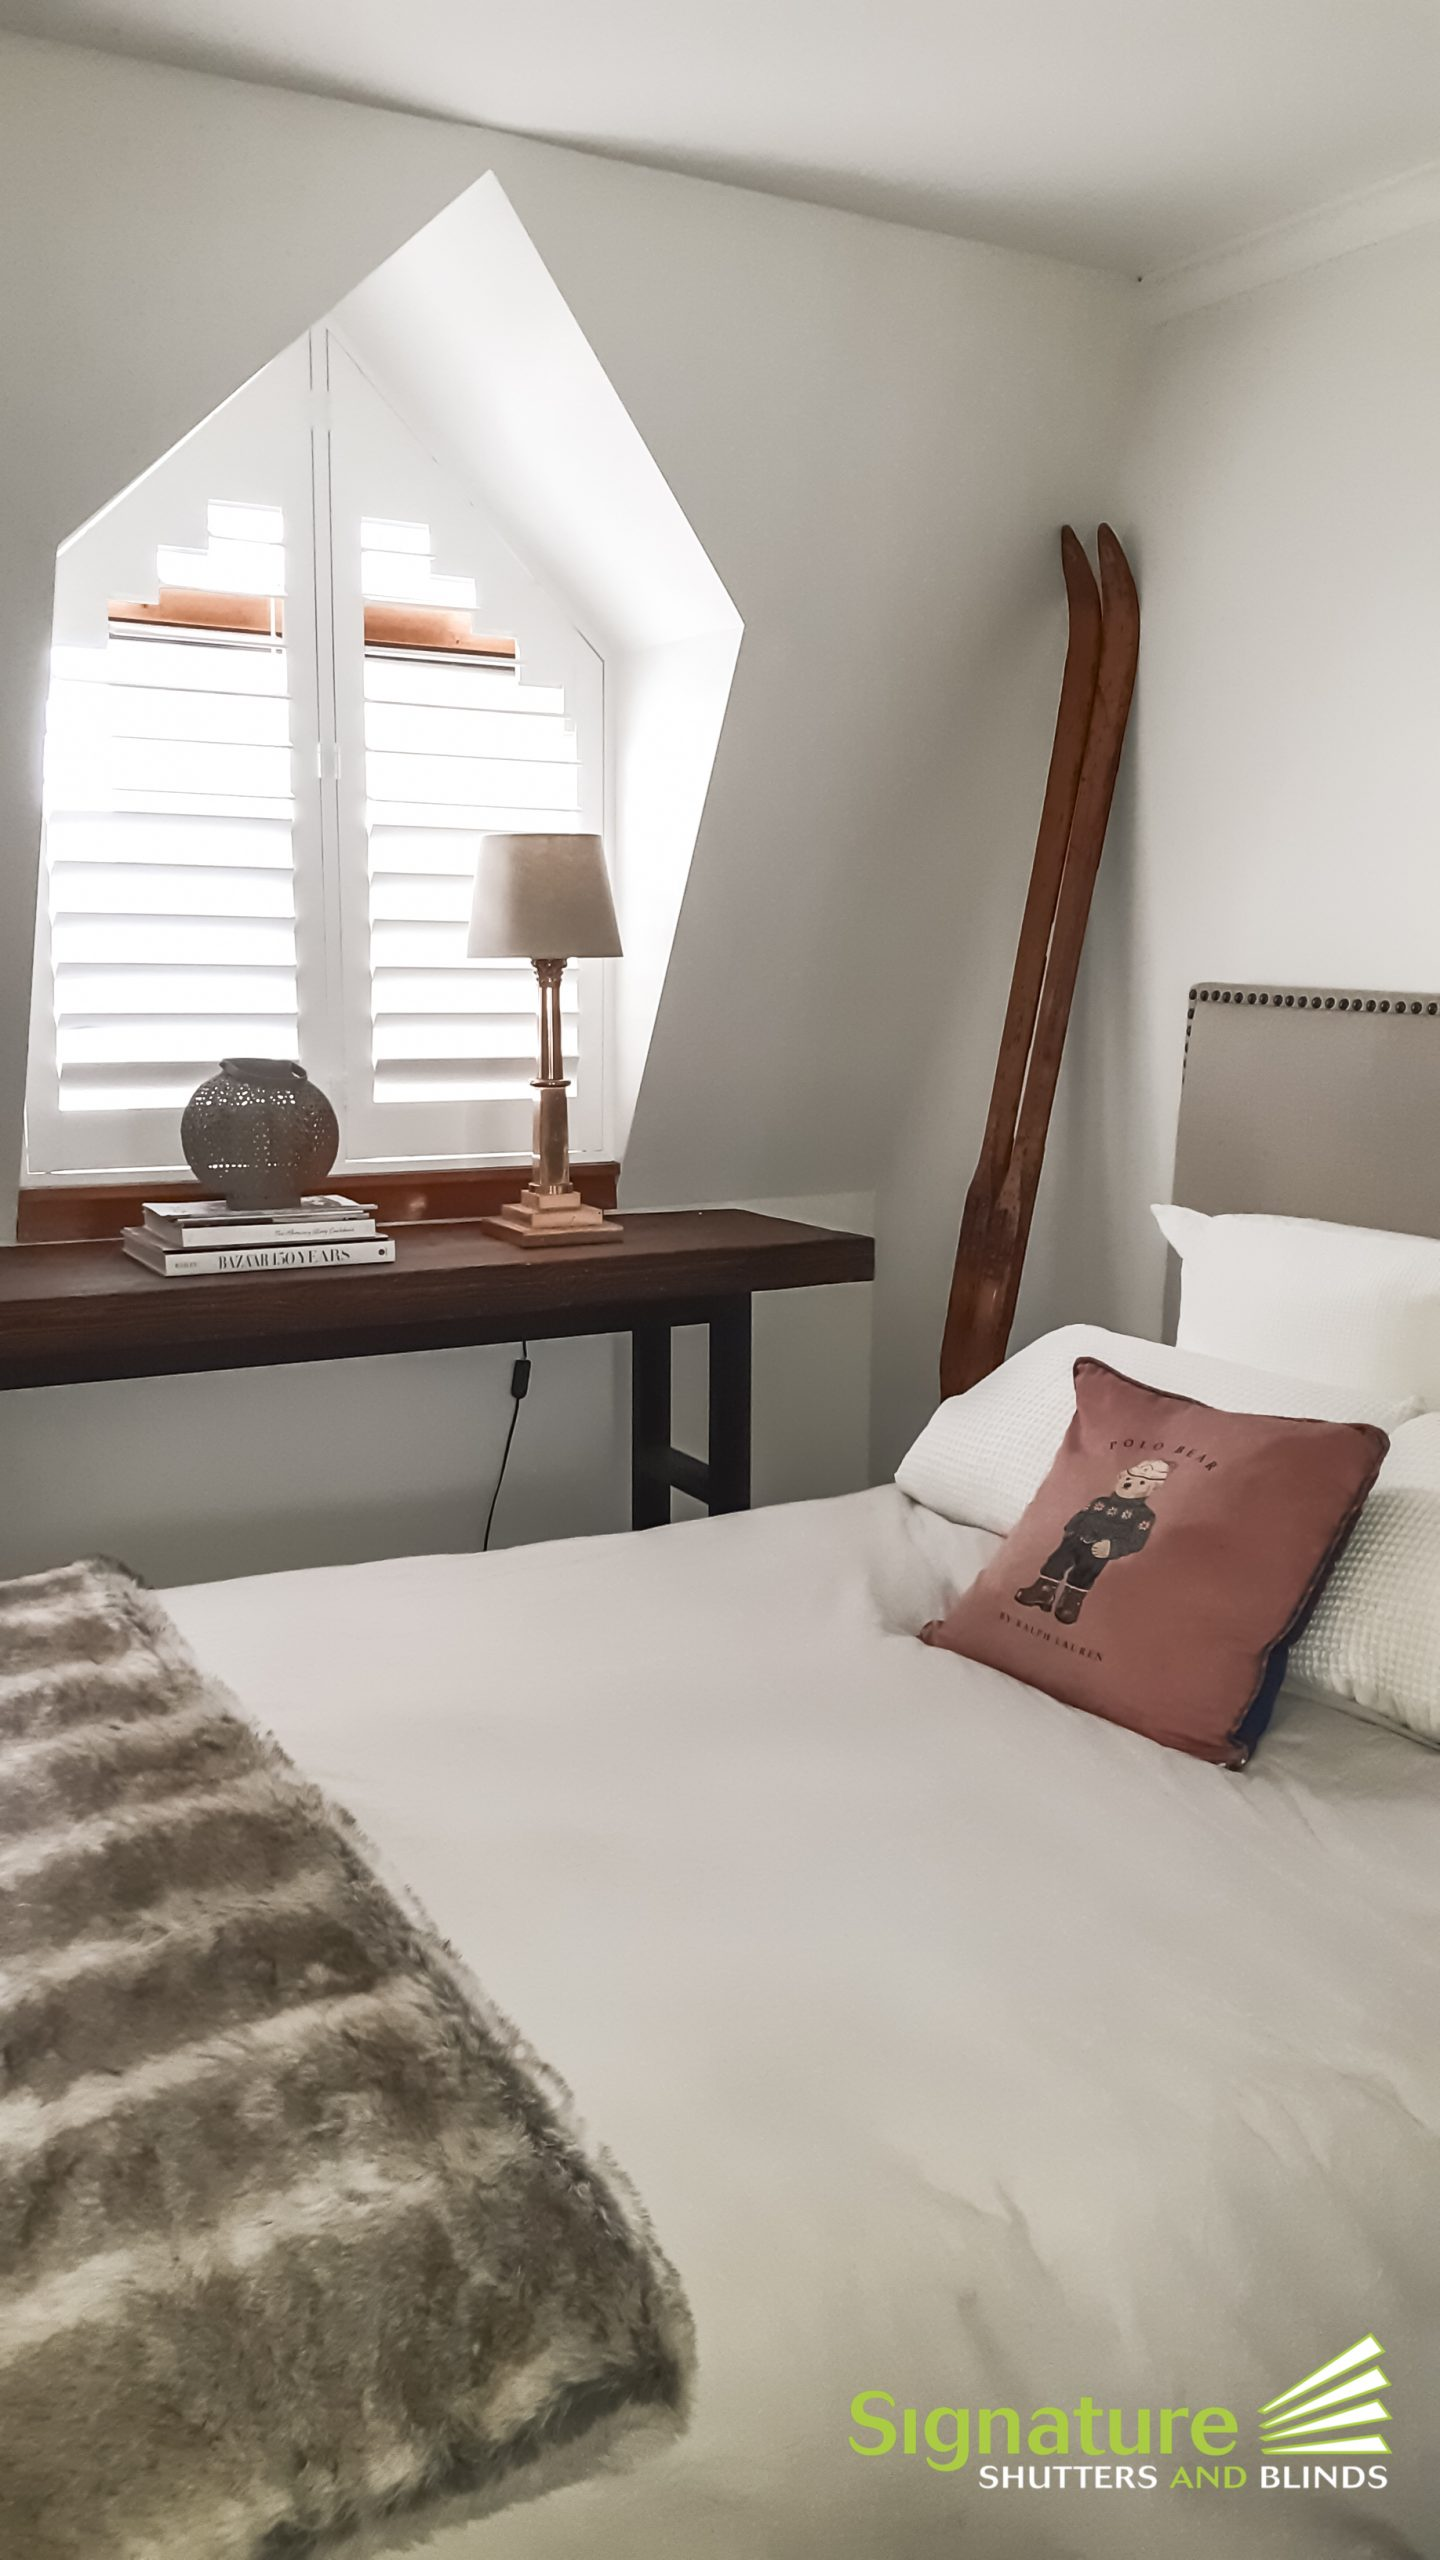 Angled Shutters in Bedroom